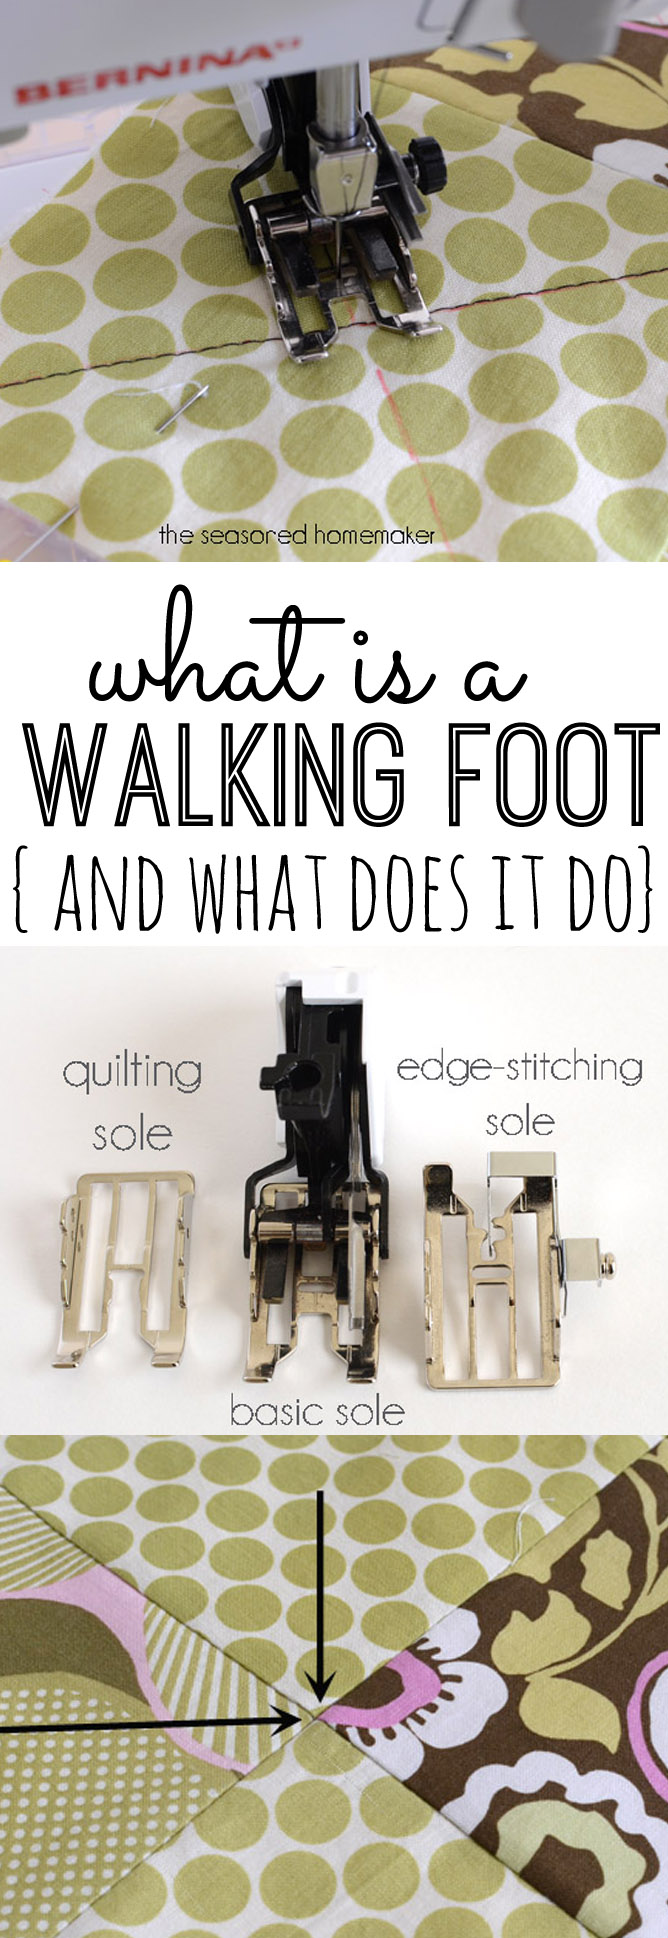 Walking foot sewing tips